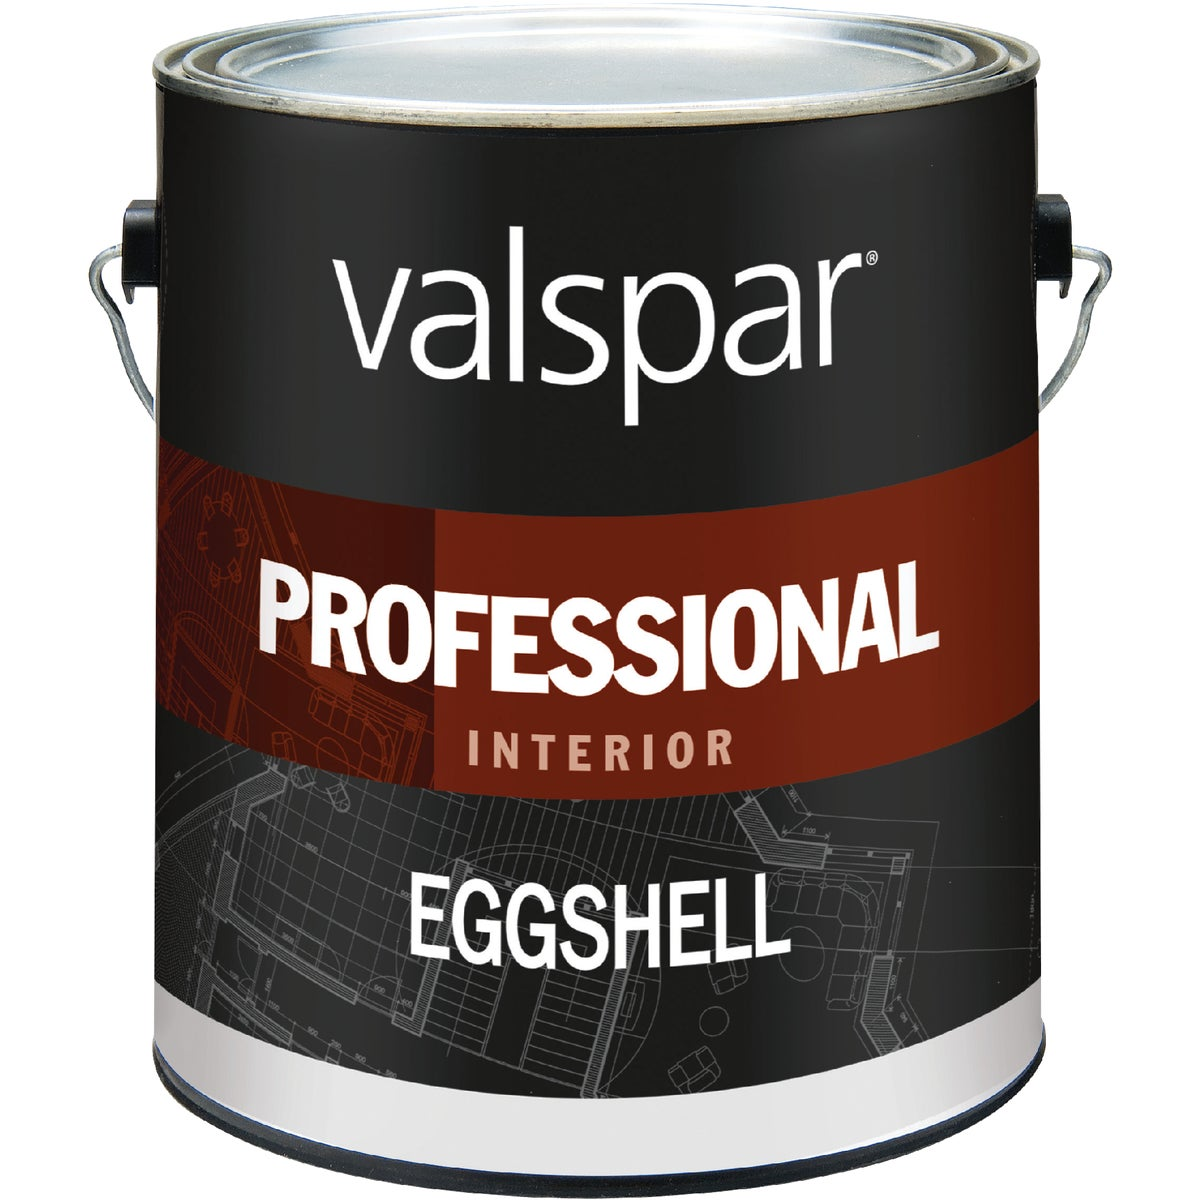 INT EGG NEUT BASE PAINT - 045.0011814.007 by Valspar Corp